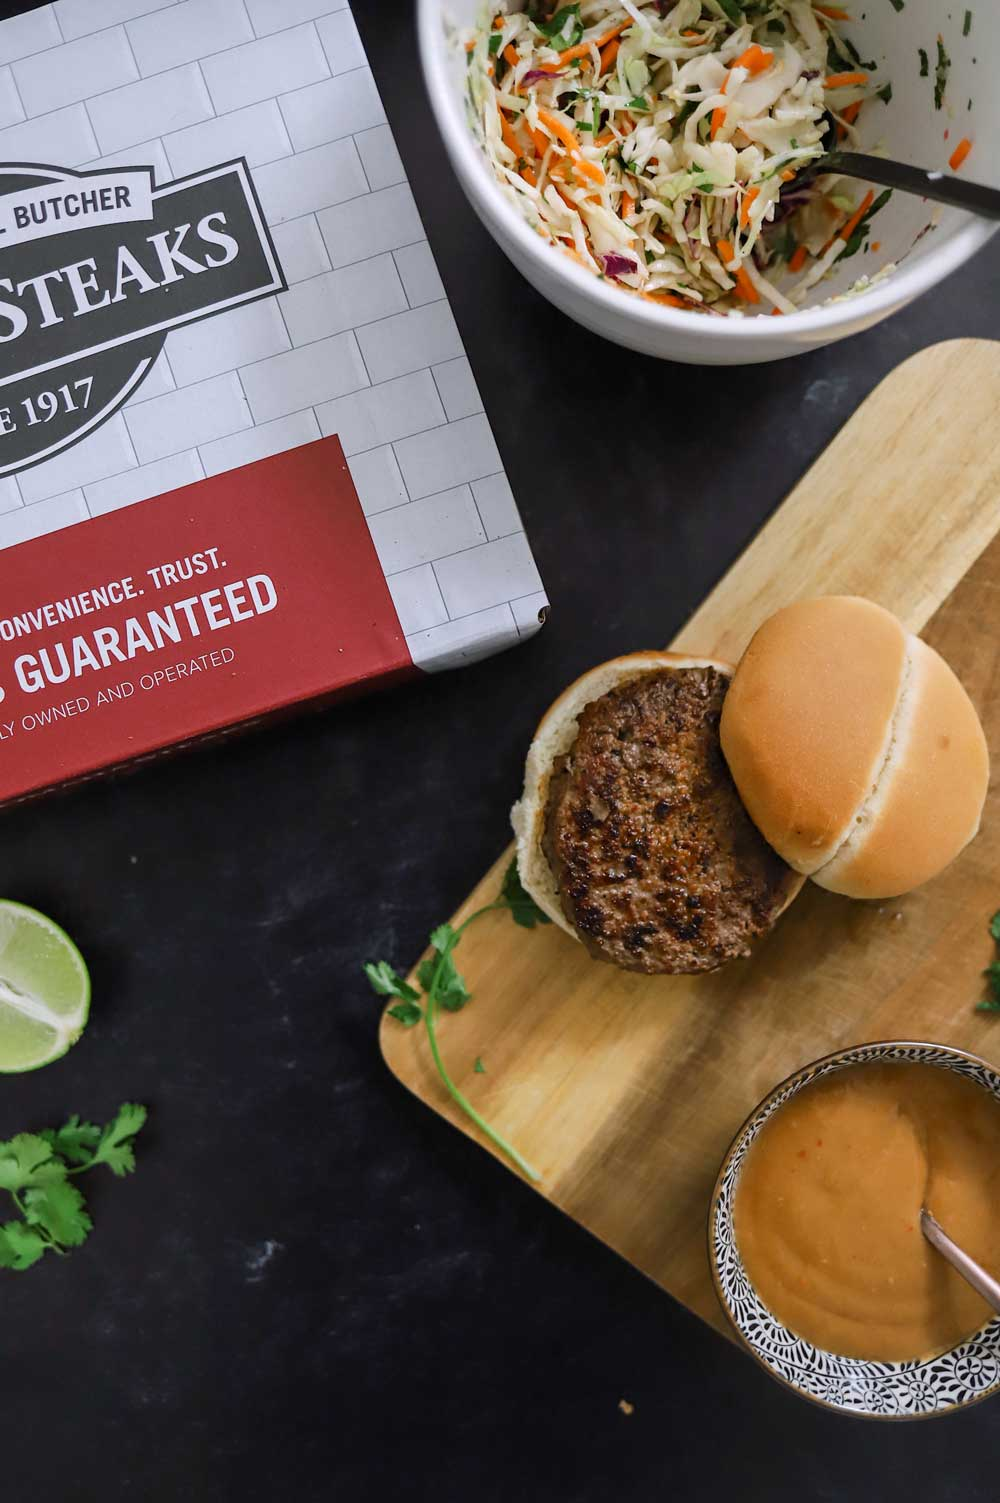 Thai Burgers With Peanut Sauce and 5 Barbeque Side Ideas for delicious family BBQ dinner ideas from top Florida lifestyle and food blogger Tabitha Blue of Fresh Mommy Blog | Thai Burgers by popular Florida lifestyle blog, Fresh Mommy Blog: image of a Thai Burger on a wooden serving board next to a bowl of spice peanut sauce and a Omaha Steaks box.